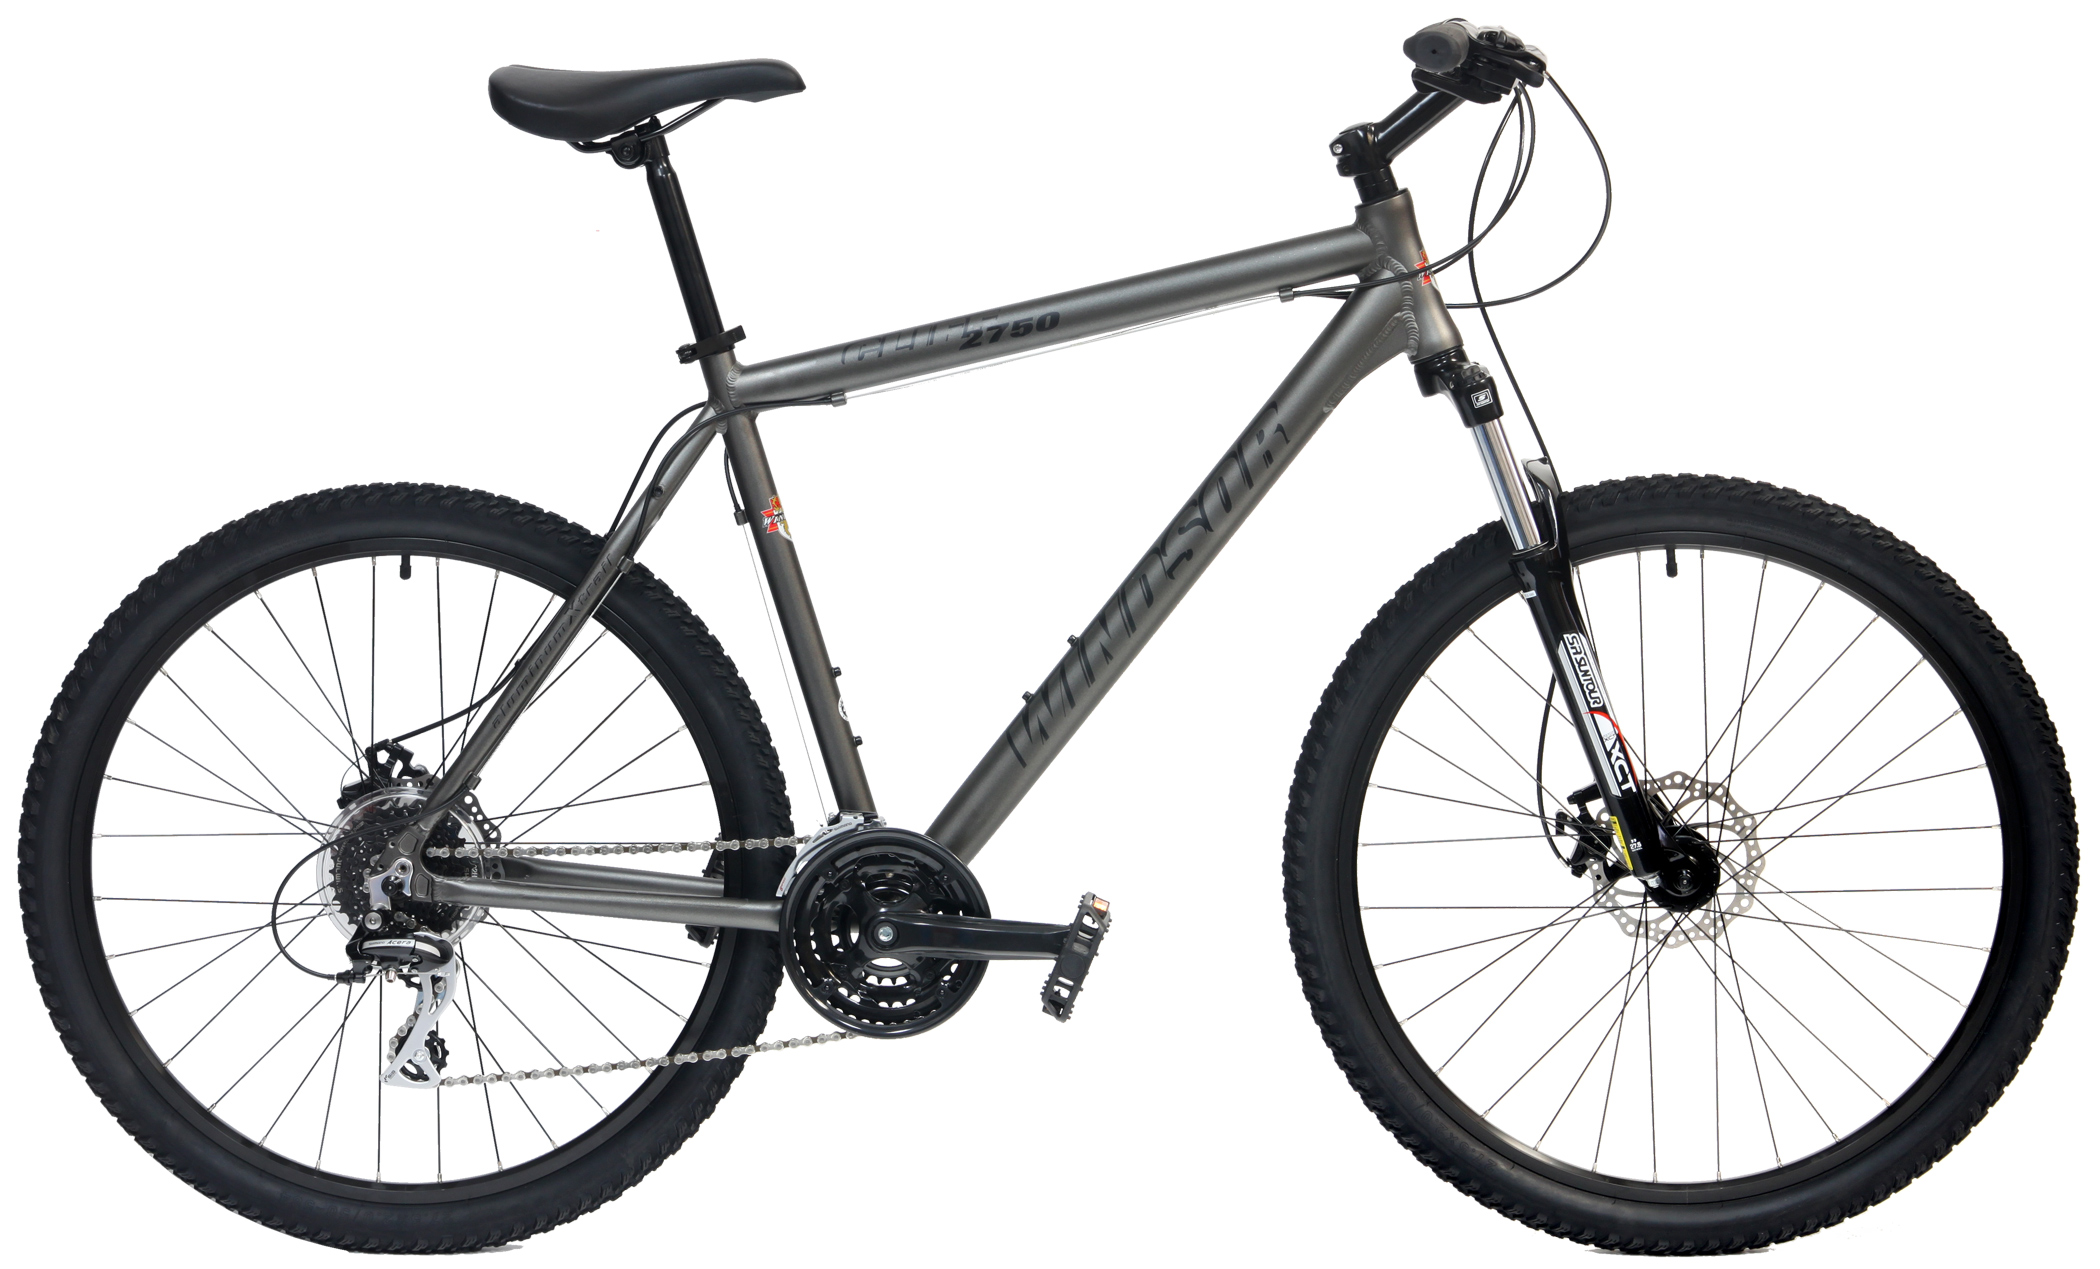 Bikes Deals Online HOT NEW CYBER DEALS Cliff